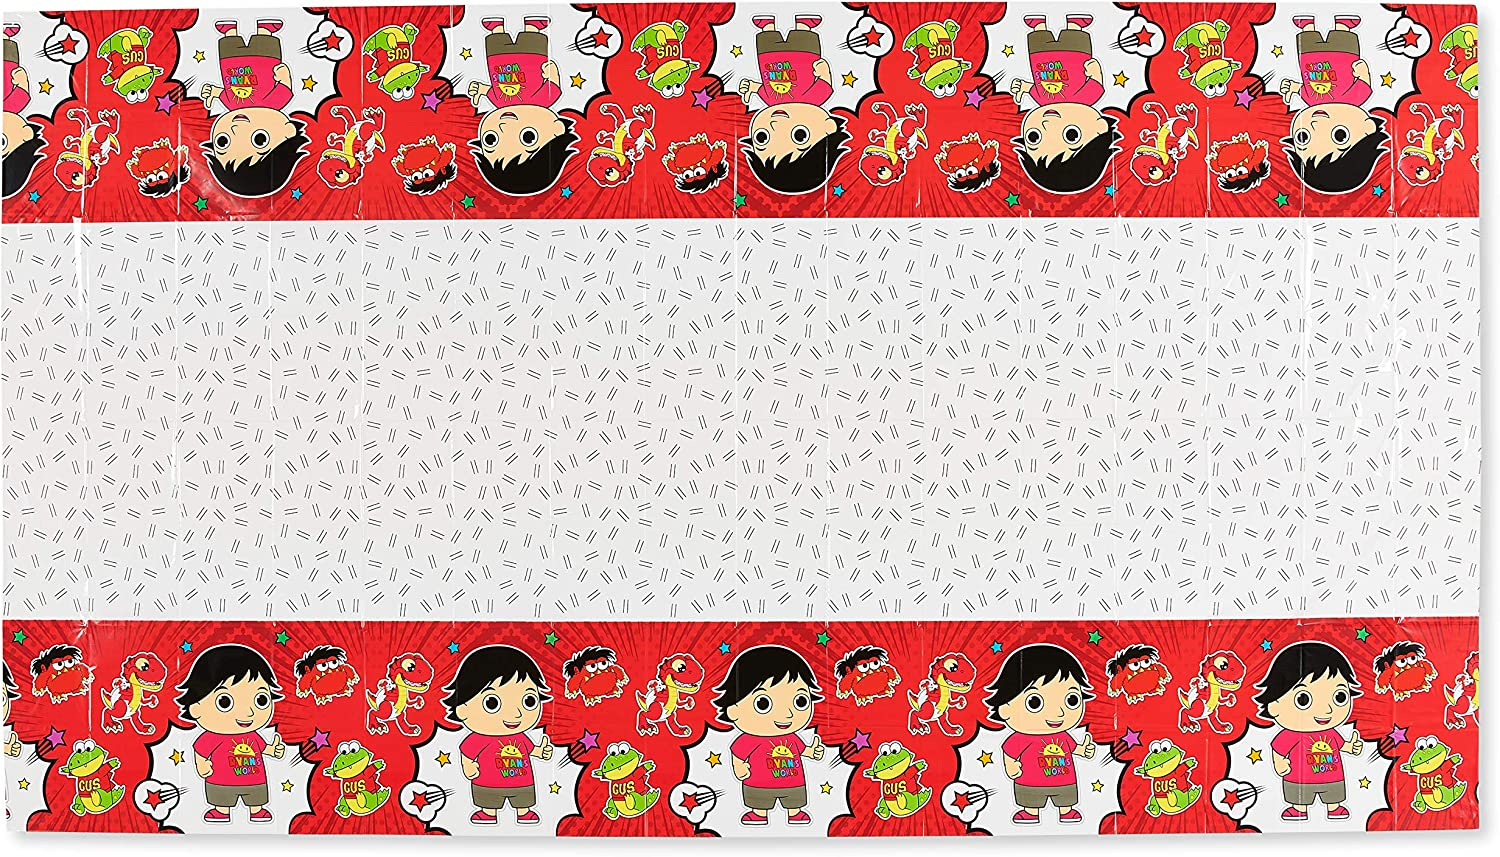 70 x 42 Ryans World Table Cover Birthday Party Supplies Decorations 2 Pcs Ryans World Tablecloth